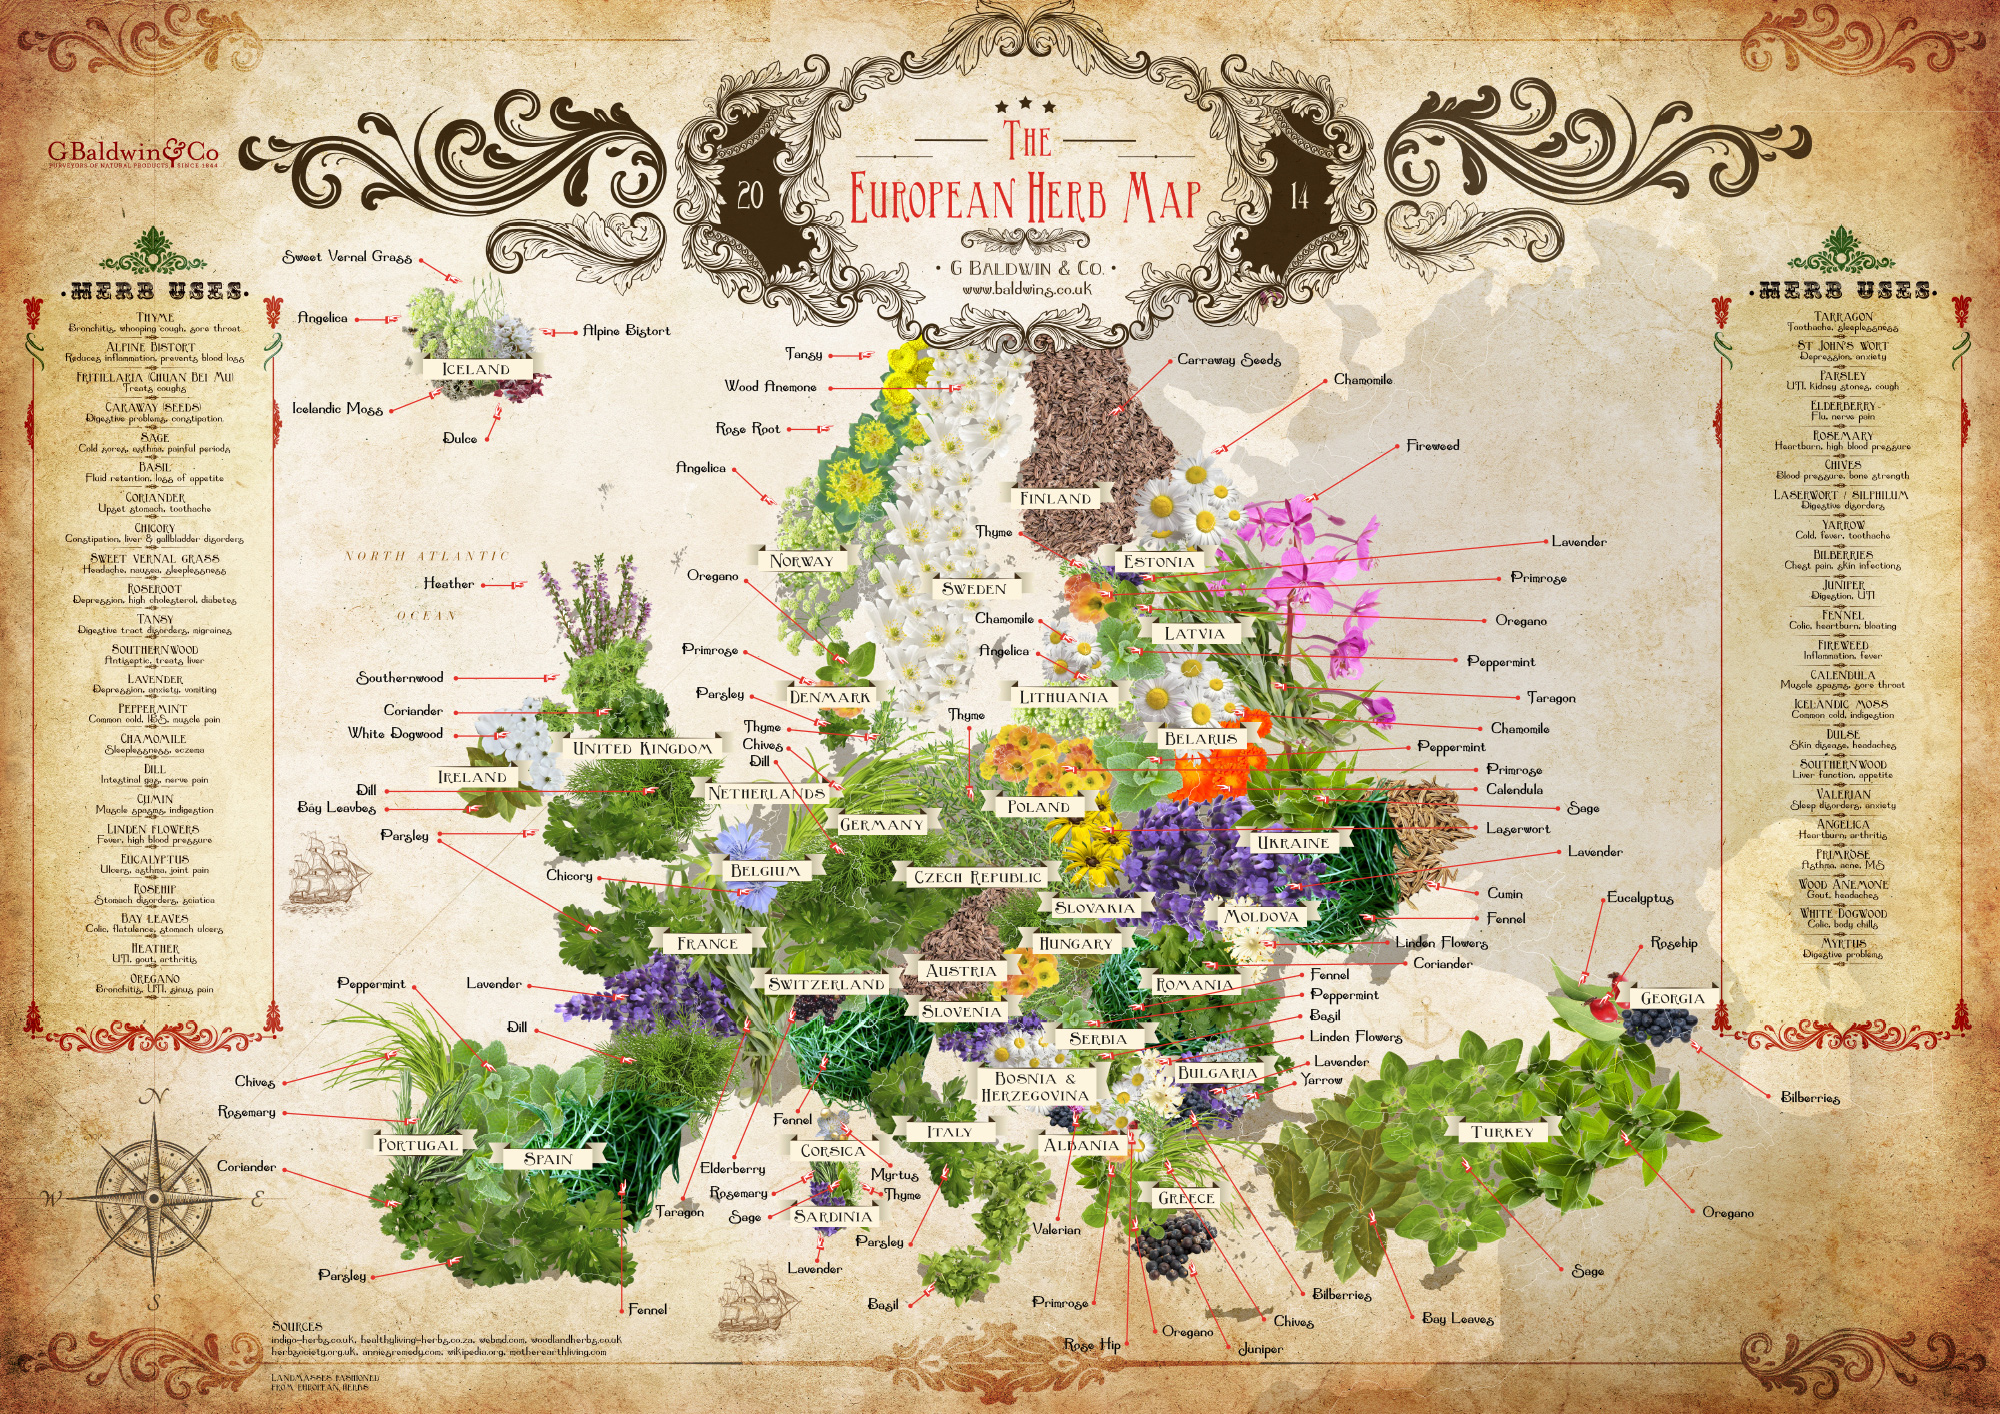 The semi global herb map earthly mission europe herb map gumiabroncs Choice Image